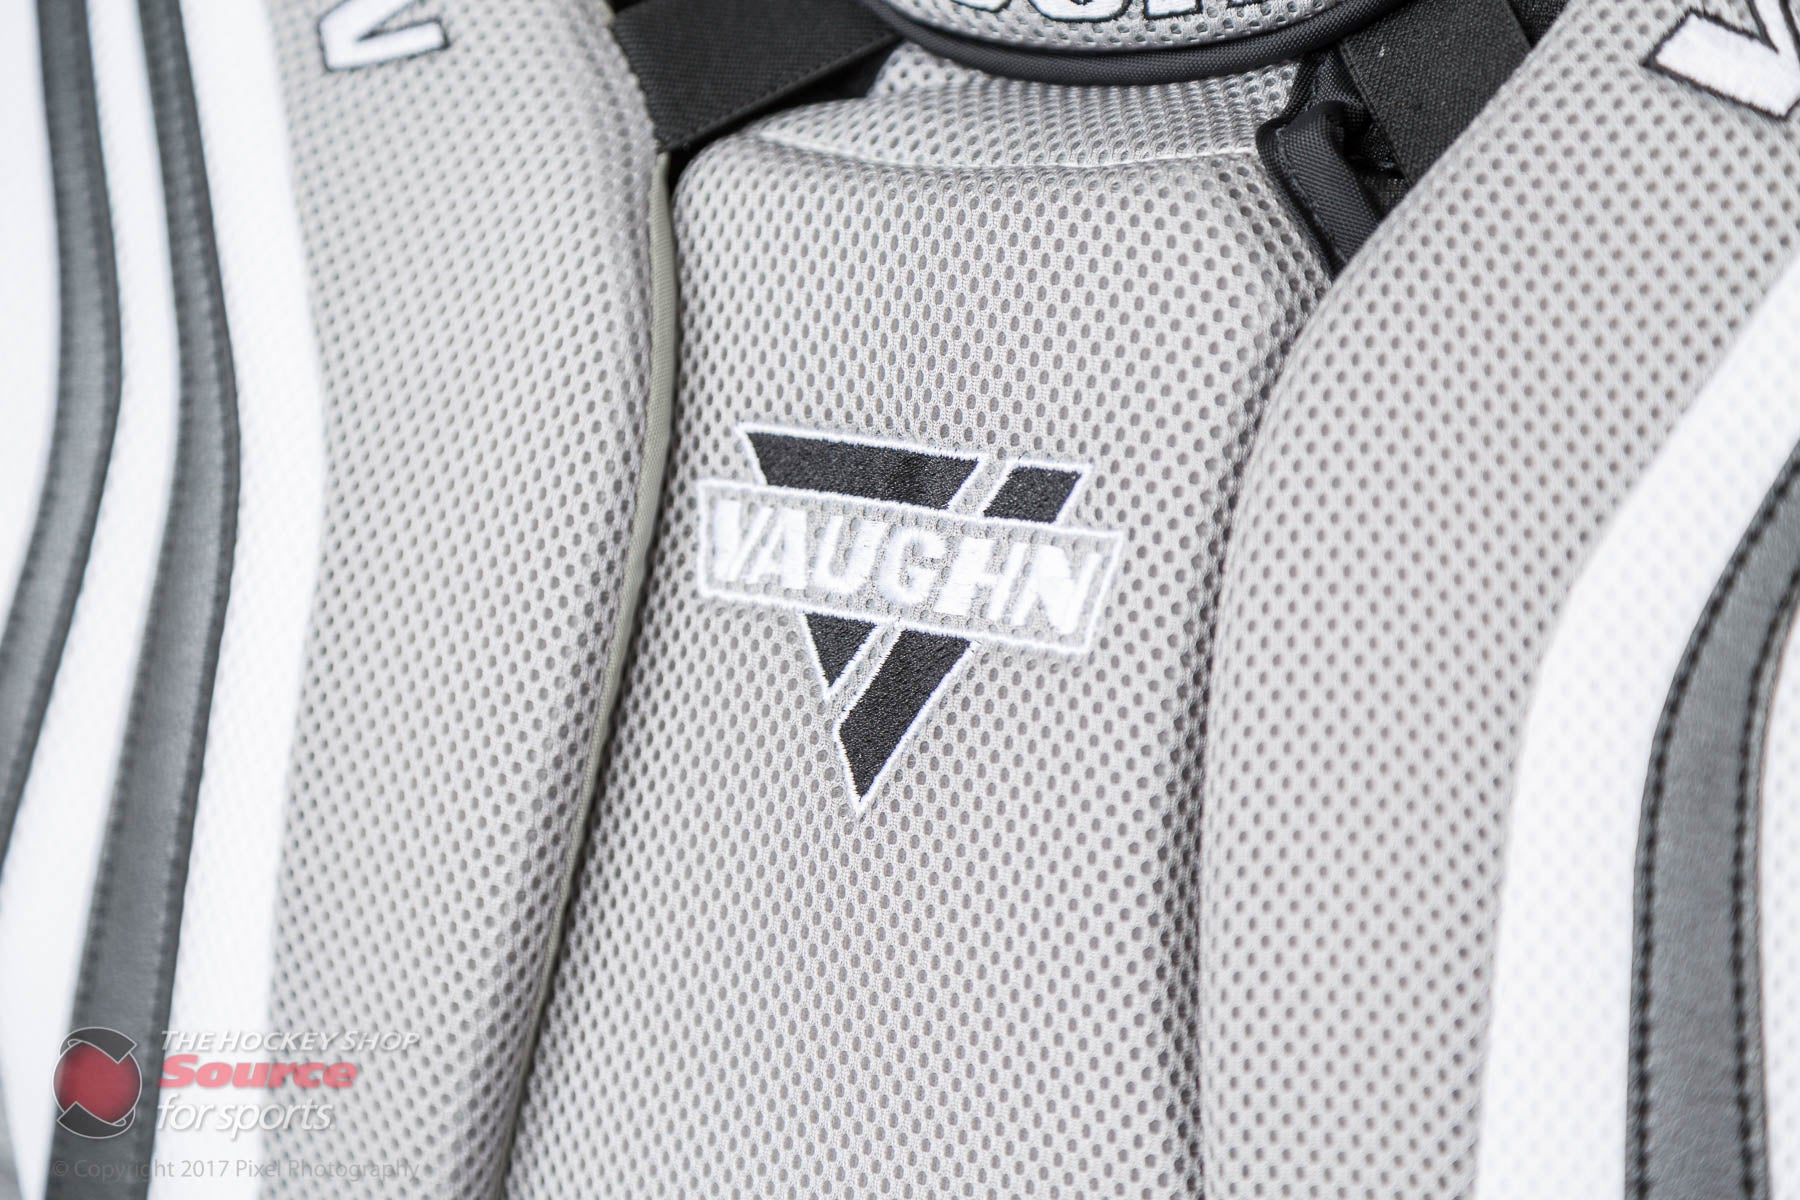 https://cdn.shopify.com/s/files/1/0020/1585/4658/files/THS-Vaughn-Ventus-chest-17-0240.jpg?8236030931121589751